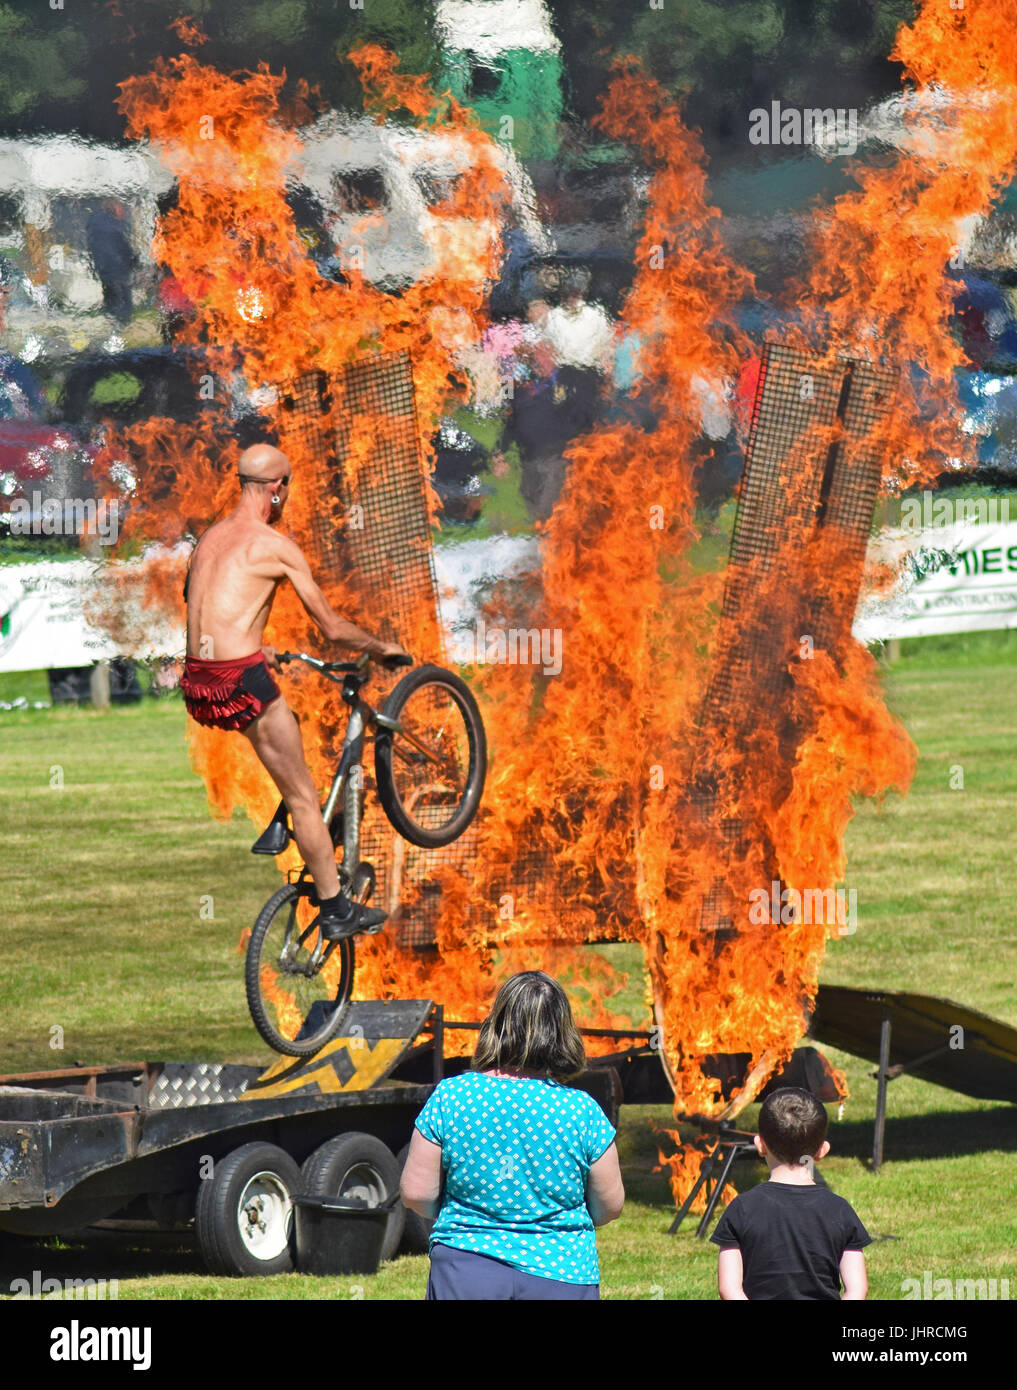 Joseph Peace Fire Show Spectacular at Glamis Motor Extravaganza 2017, Glamis Castle, Angus, Scotland Stock Photo